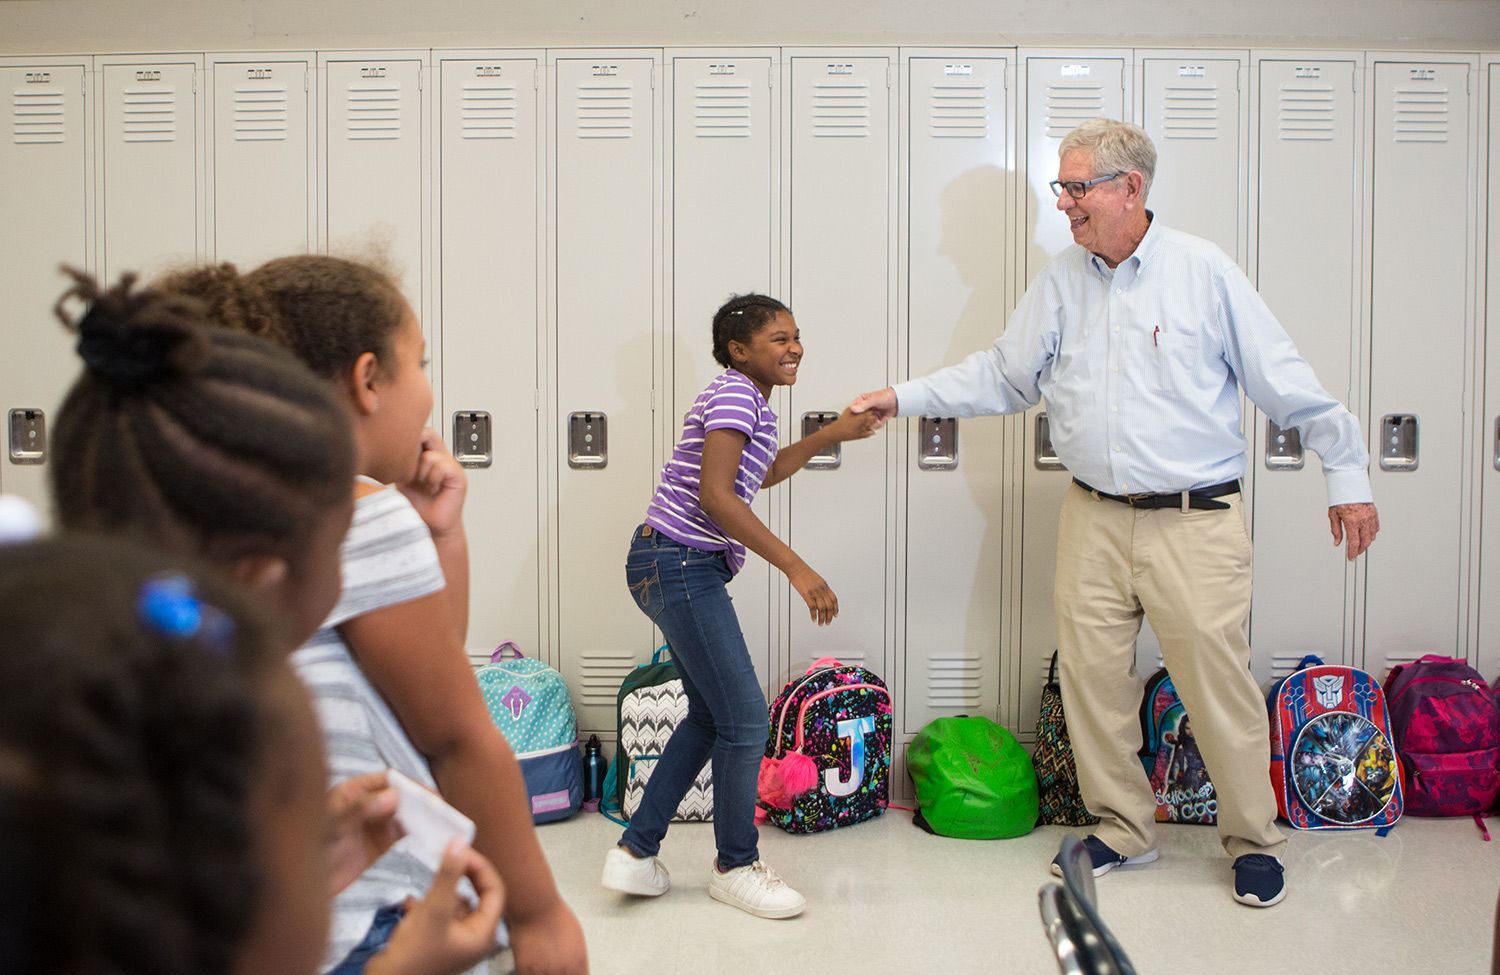 Bob Kronick dancing with students during a music lesson.